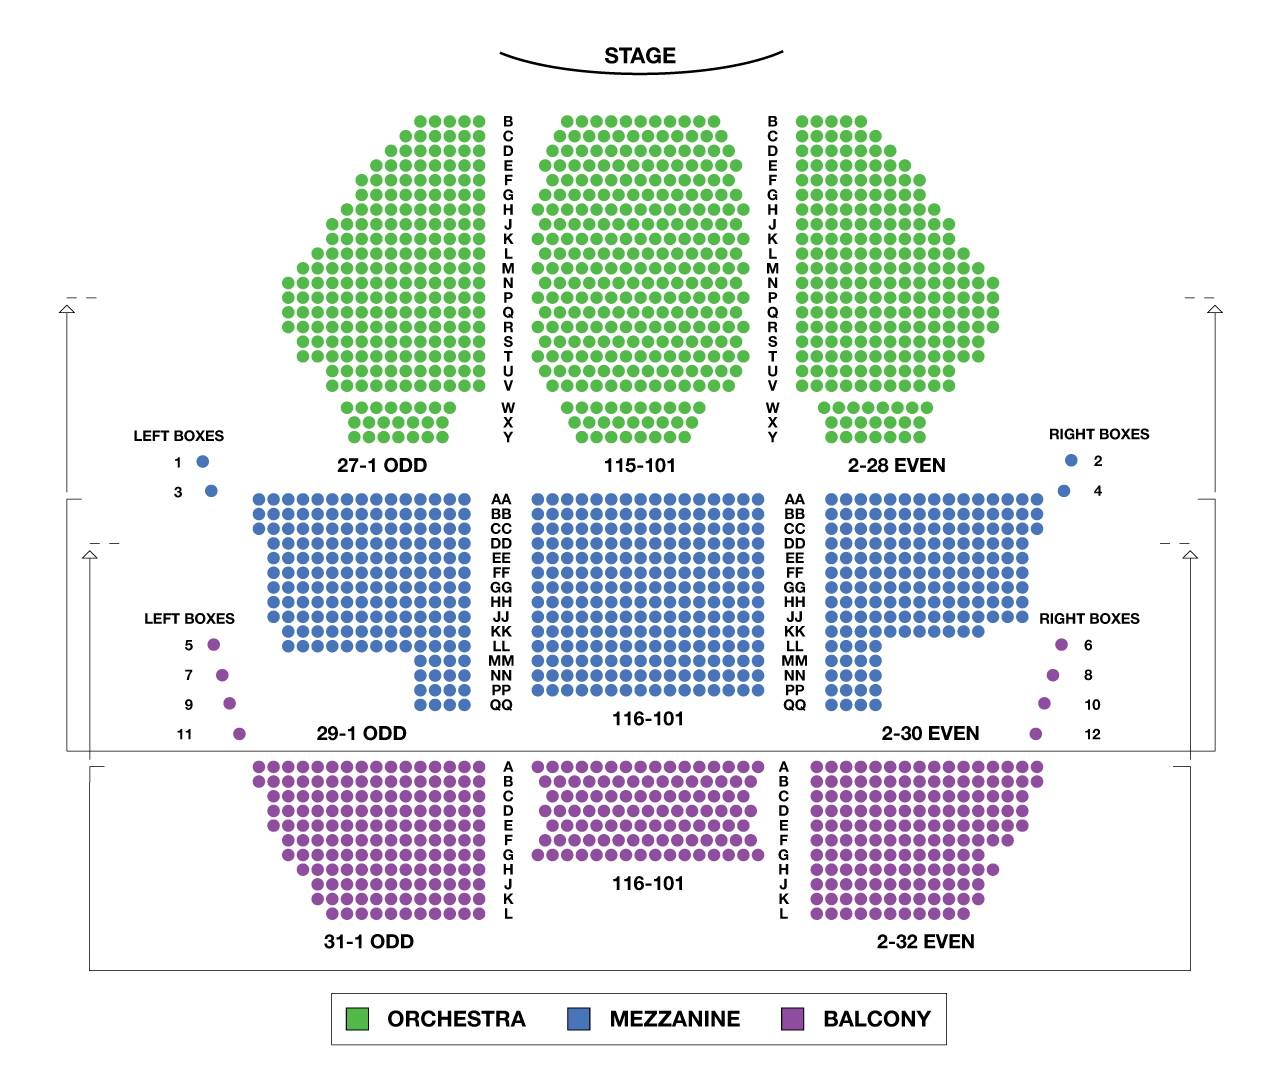 New Amsterdam Theatre Large Broadway Seating Charts